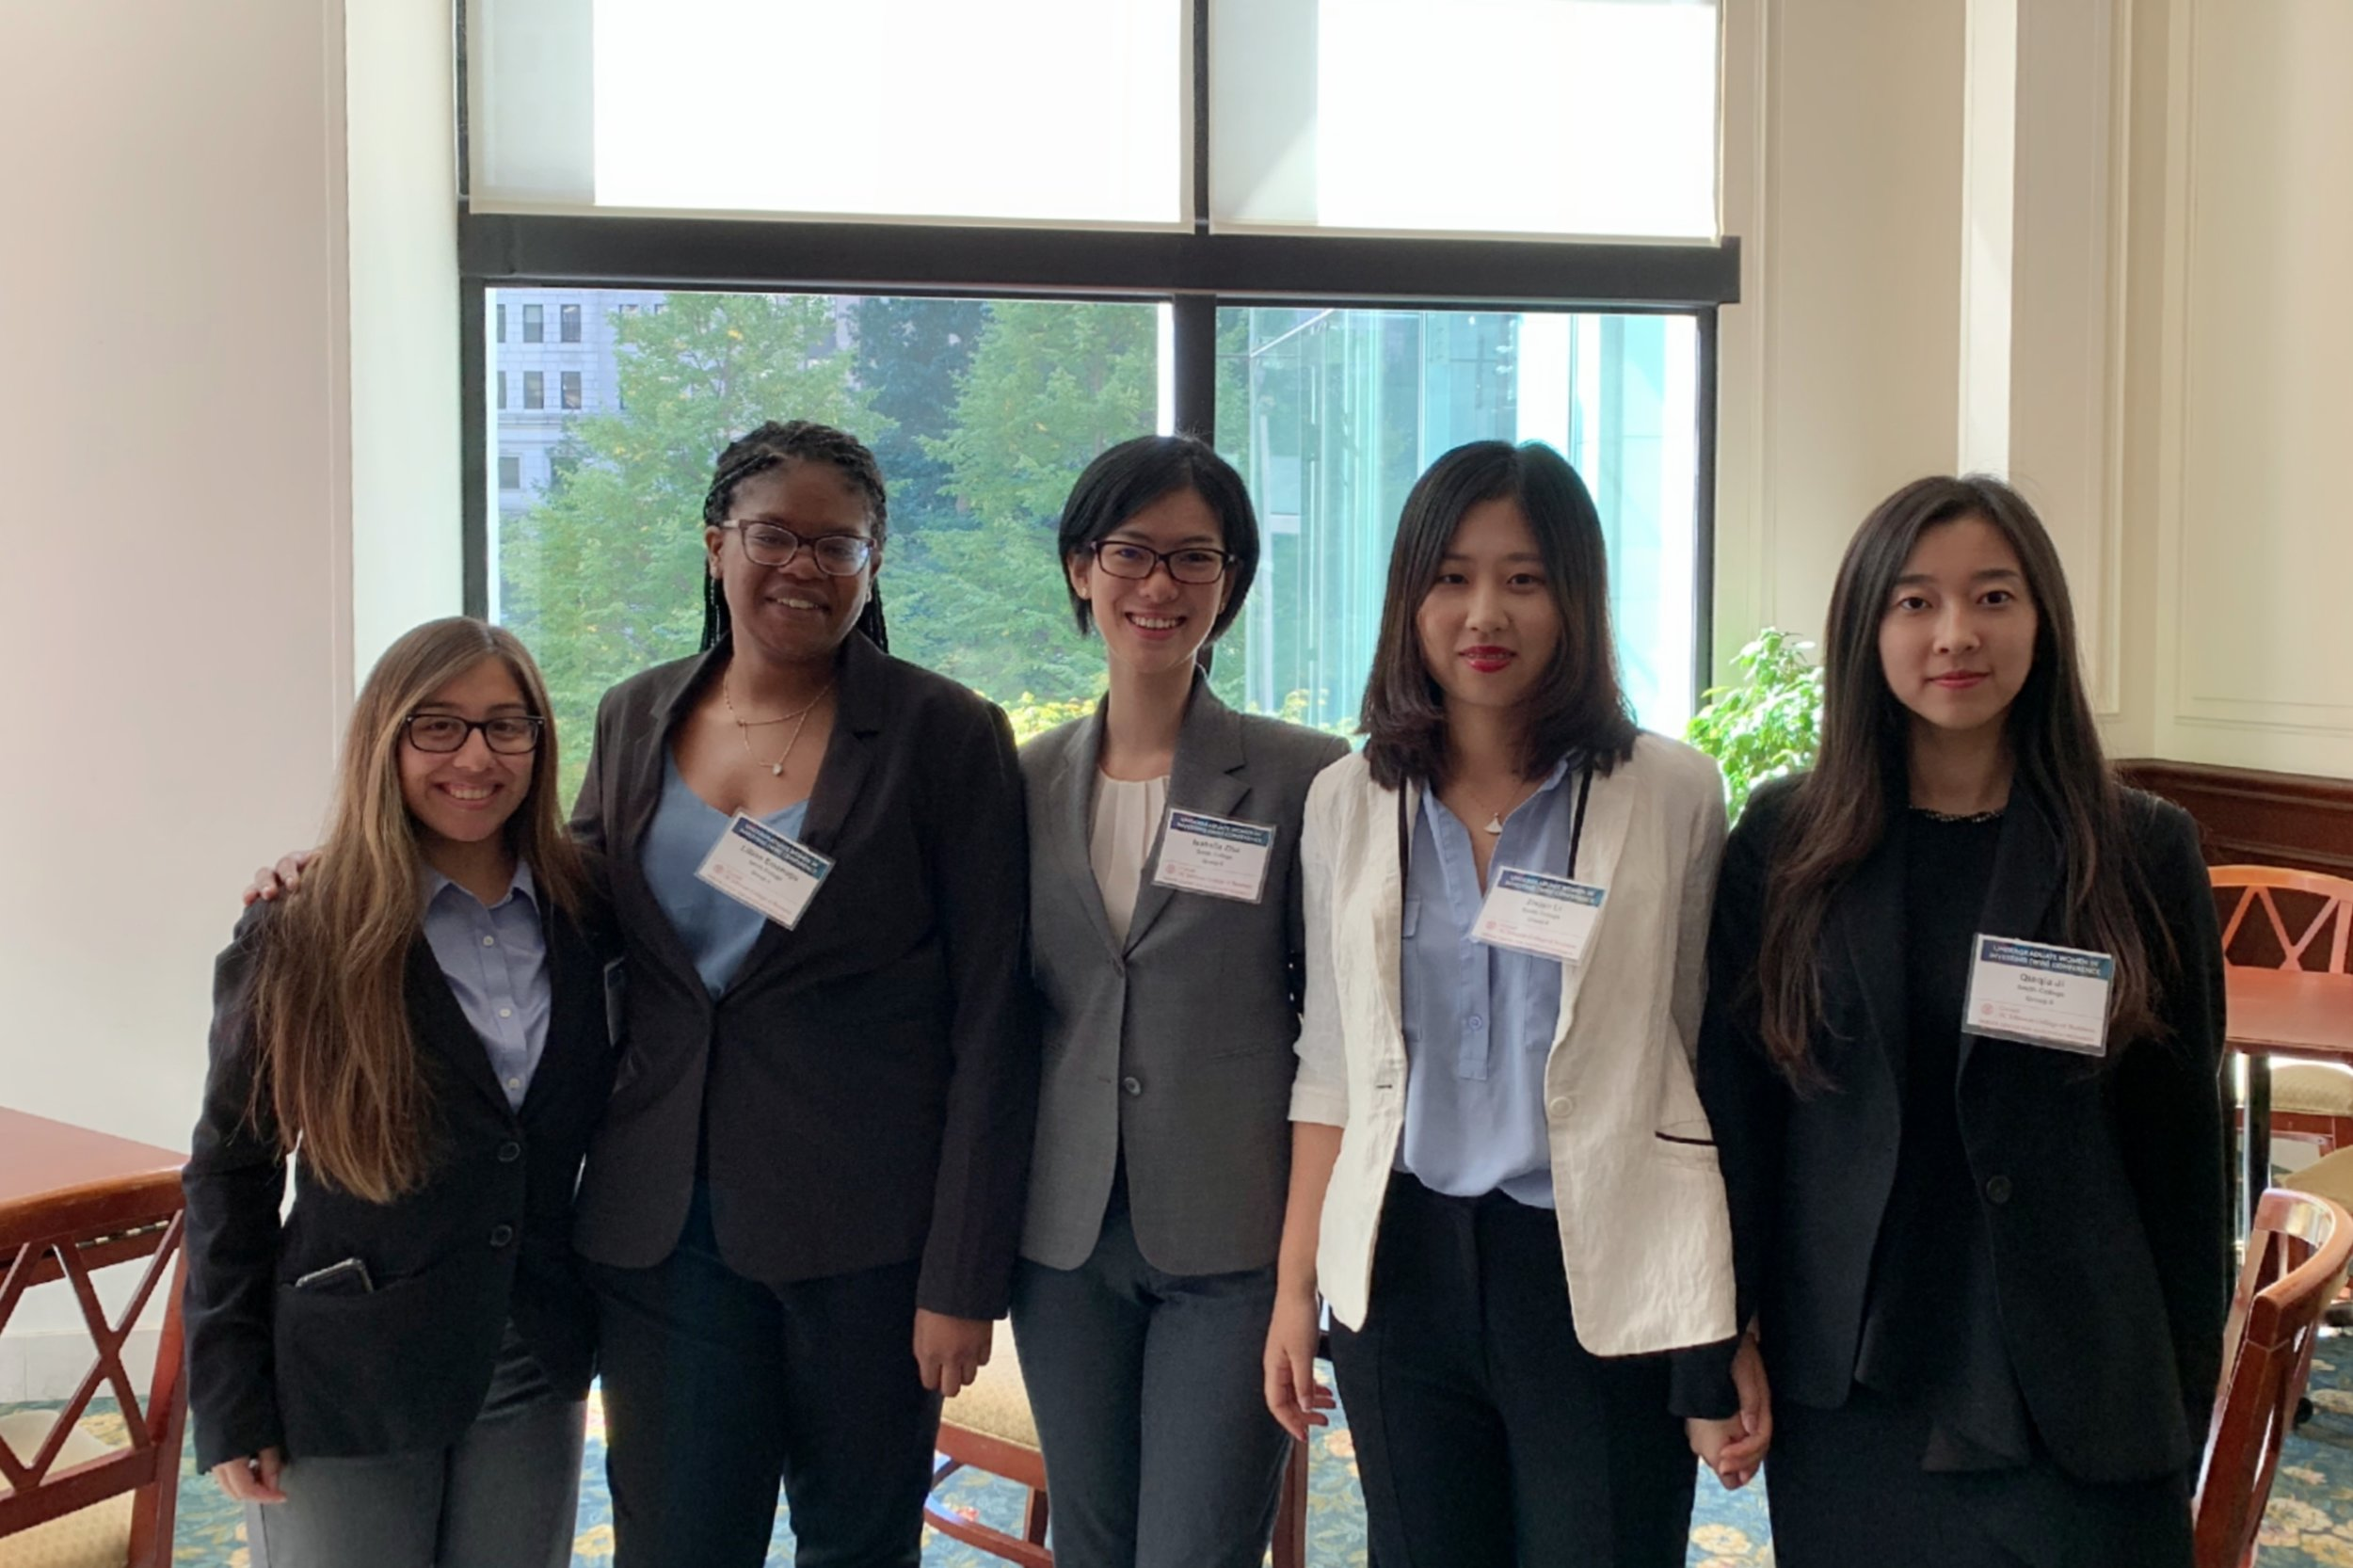 Cornell Women In Investing Conference Stock Pitch Competition, where Smith won second place (out of ten teams)!